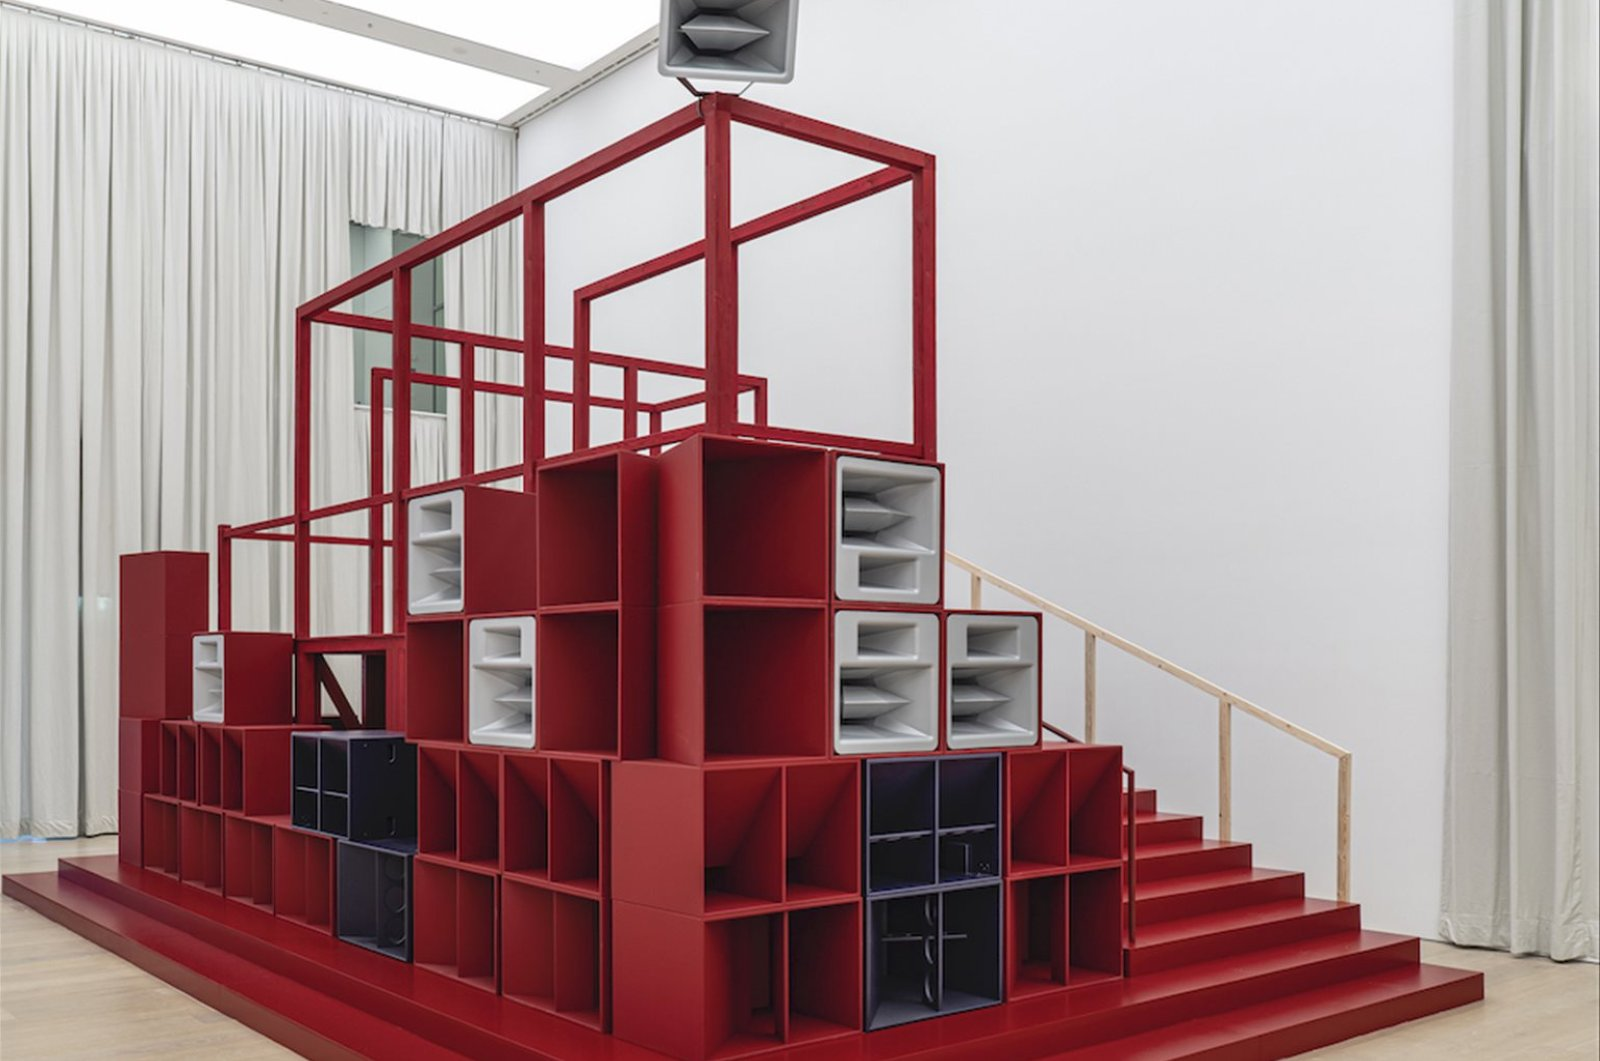 """""""Bergama Stereotip"""" 2019-2020,aArchitectural construction with 13-channel sound, loudspeakers, amplifiers, computer, audio interface, wood, metal molton curtain."""